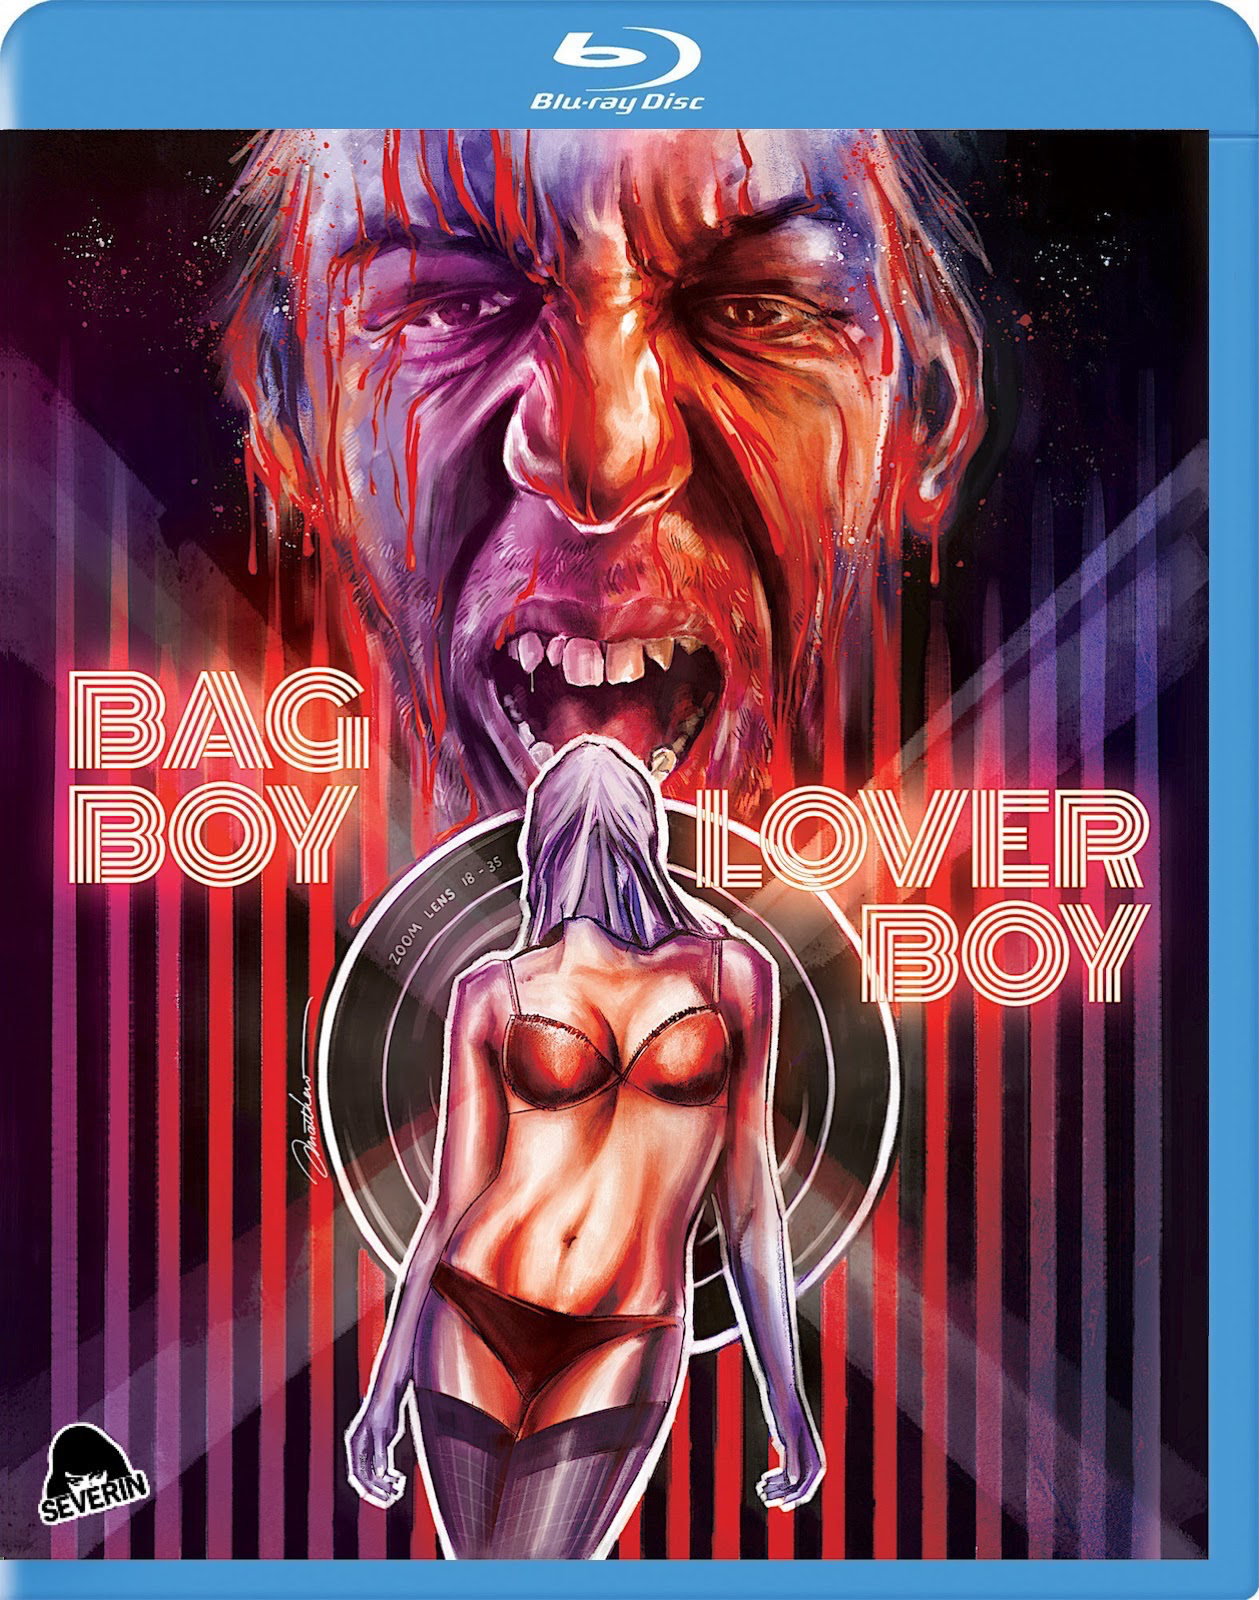 bag boy lover boy blu-ray